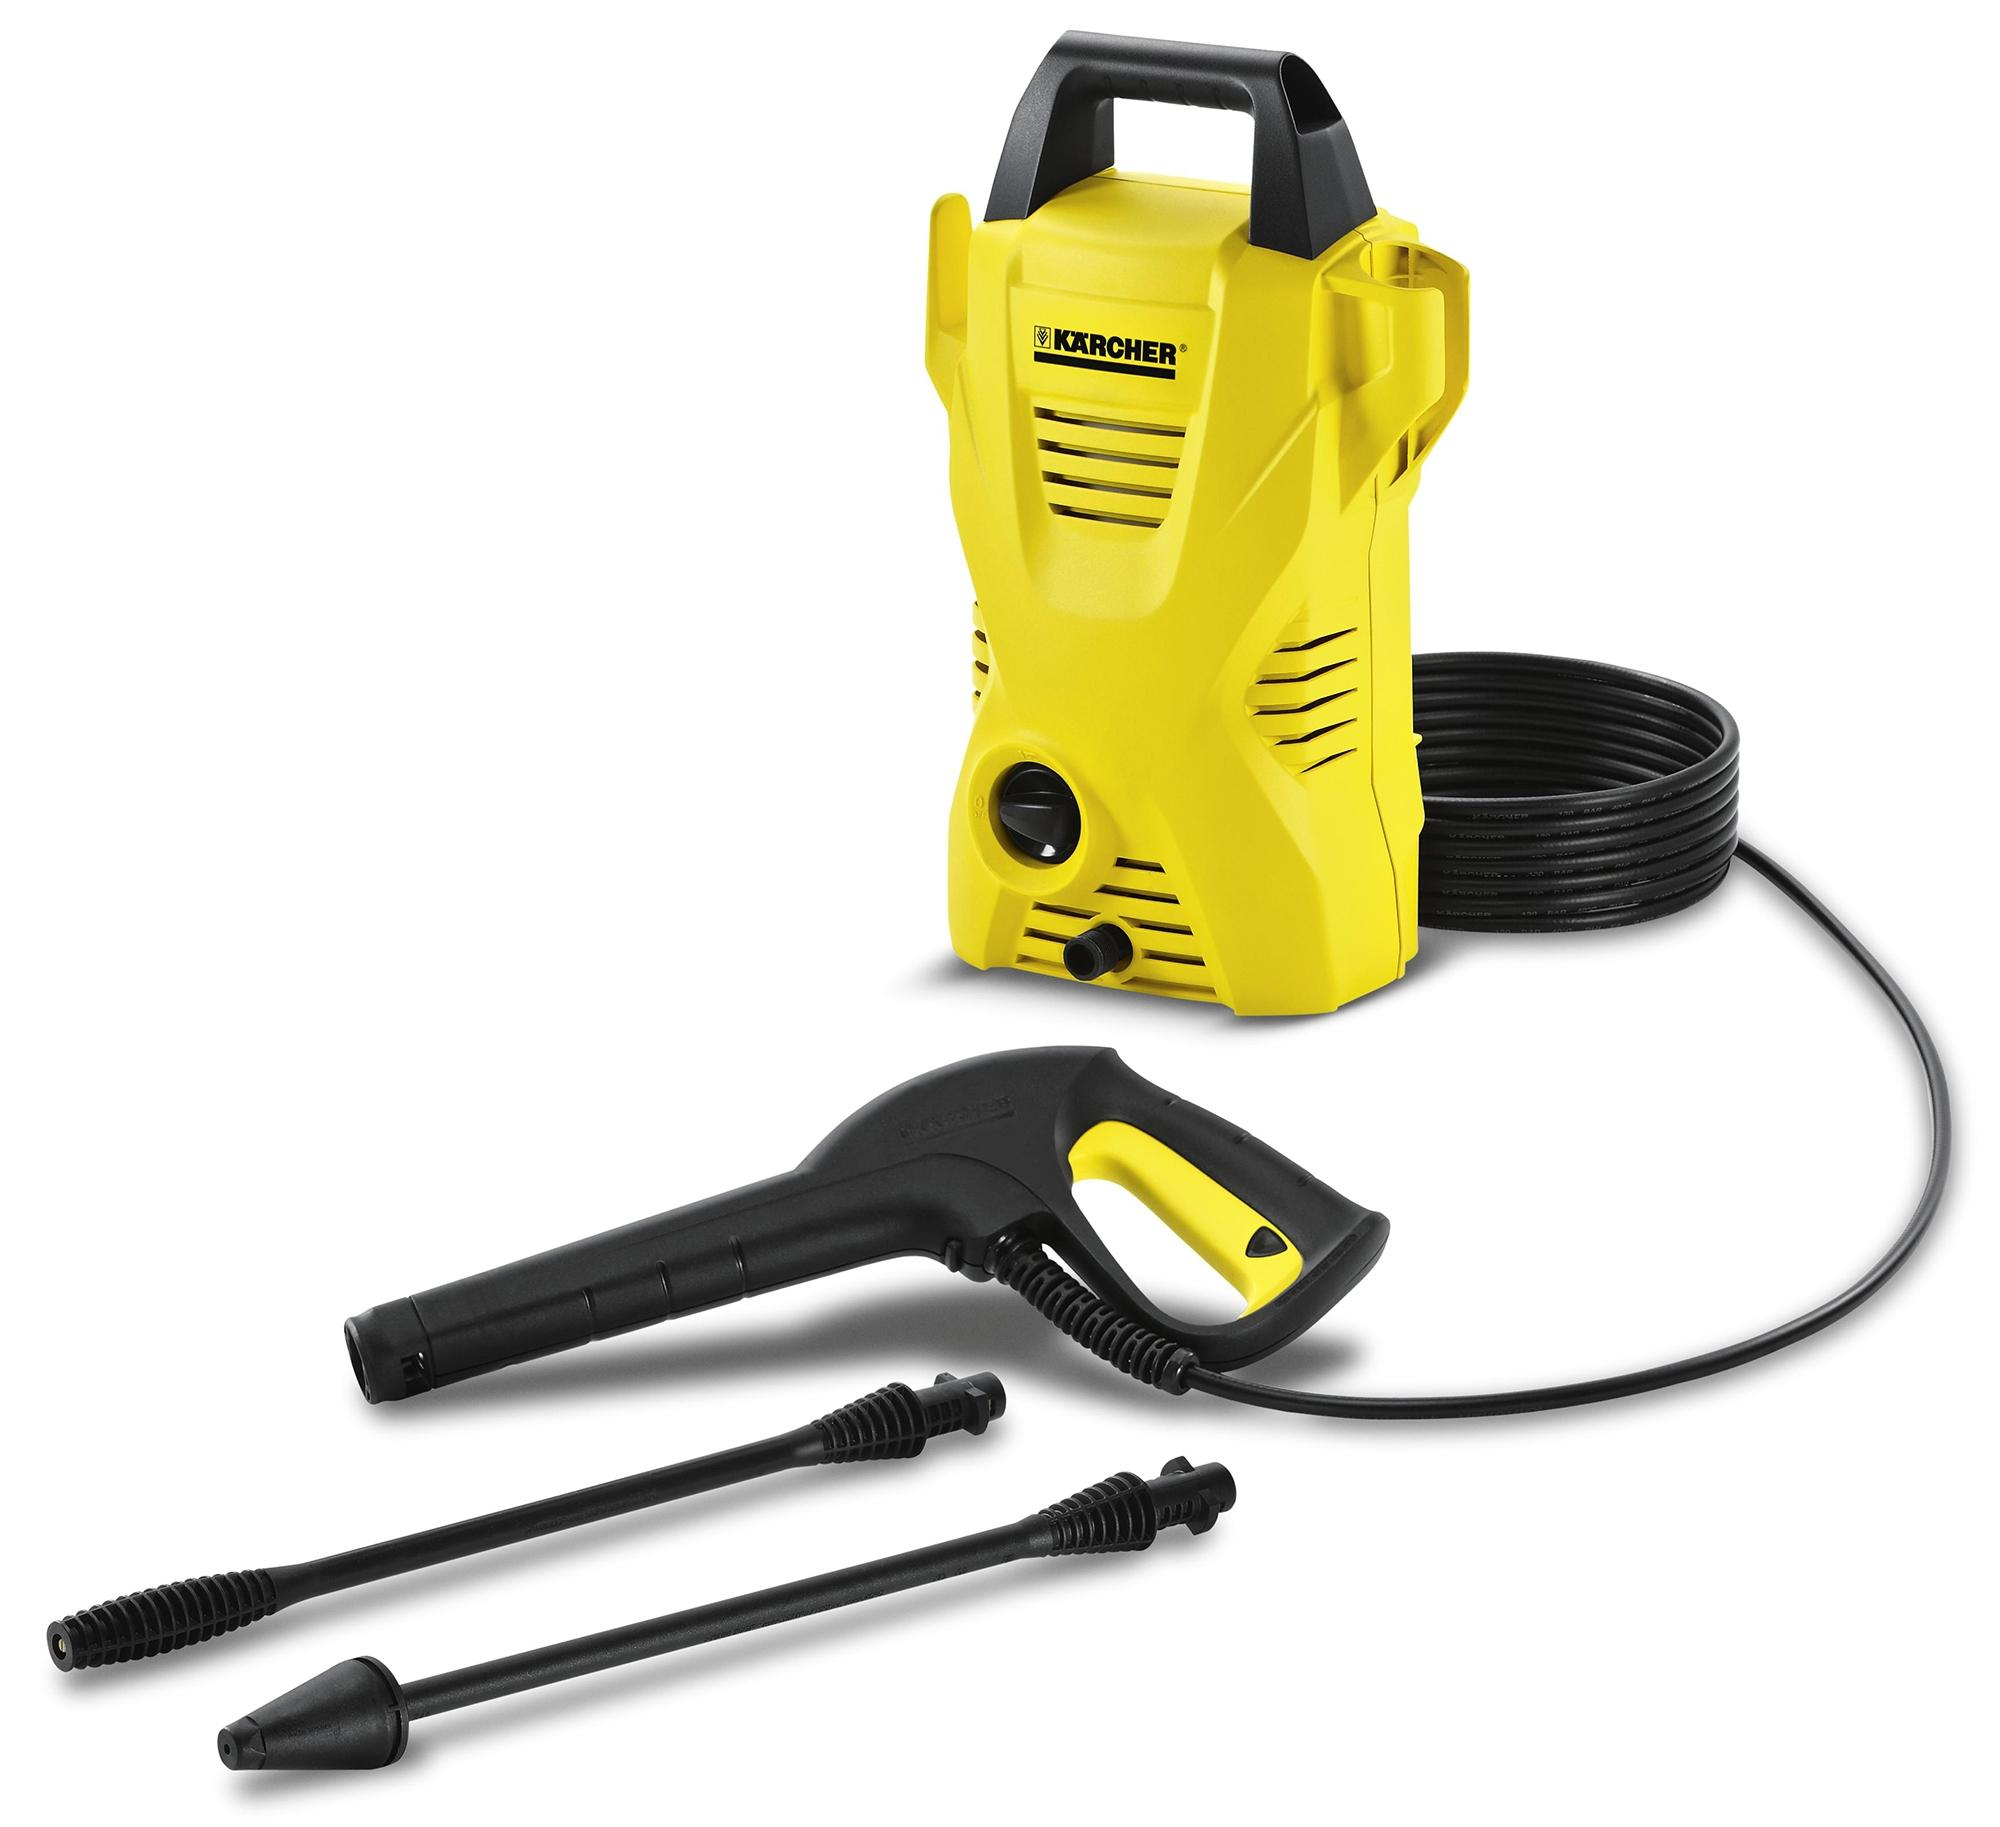 Karcher - K2 Compact Pressure Washer lowest price